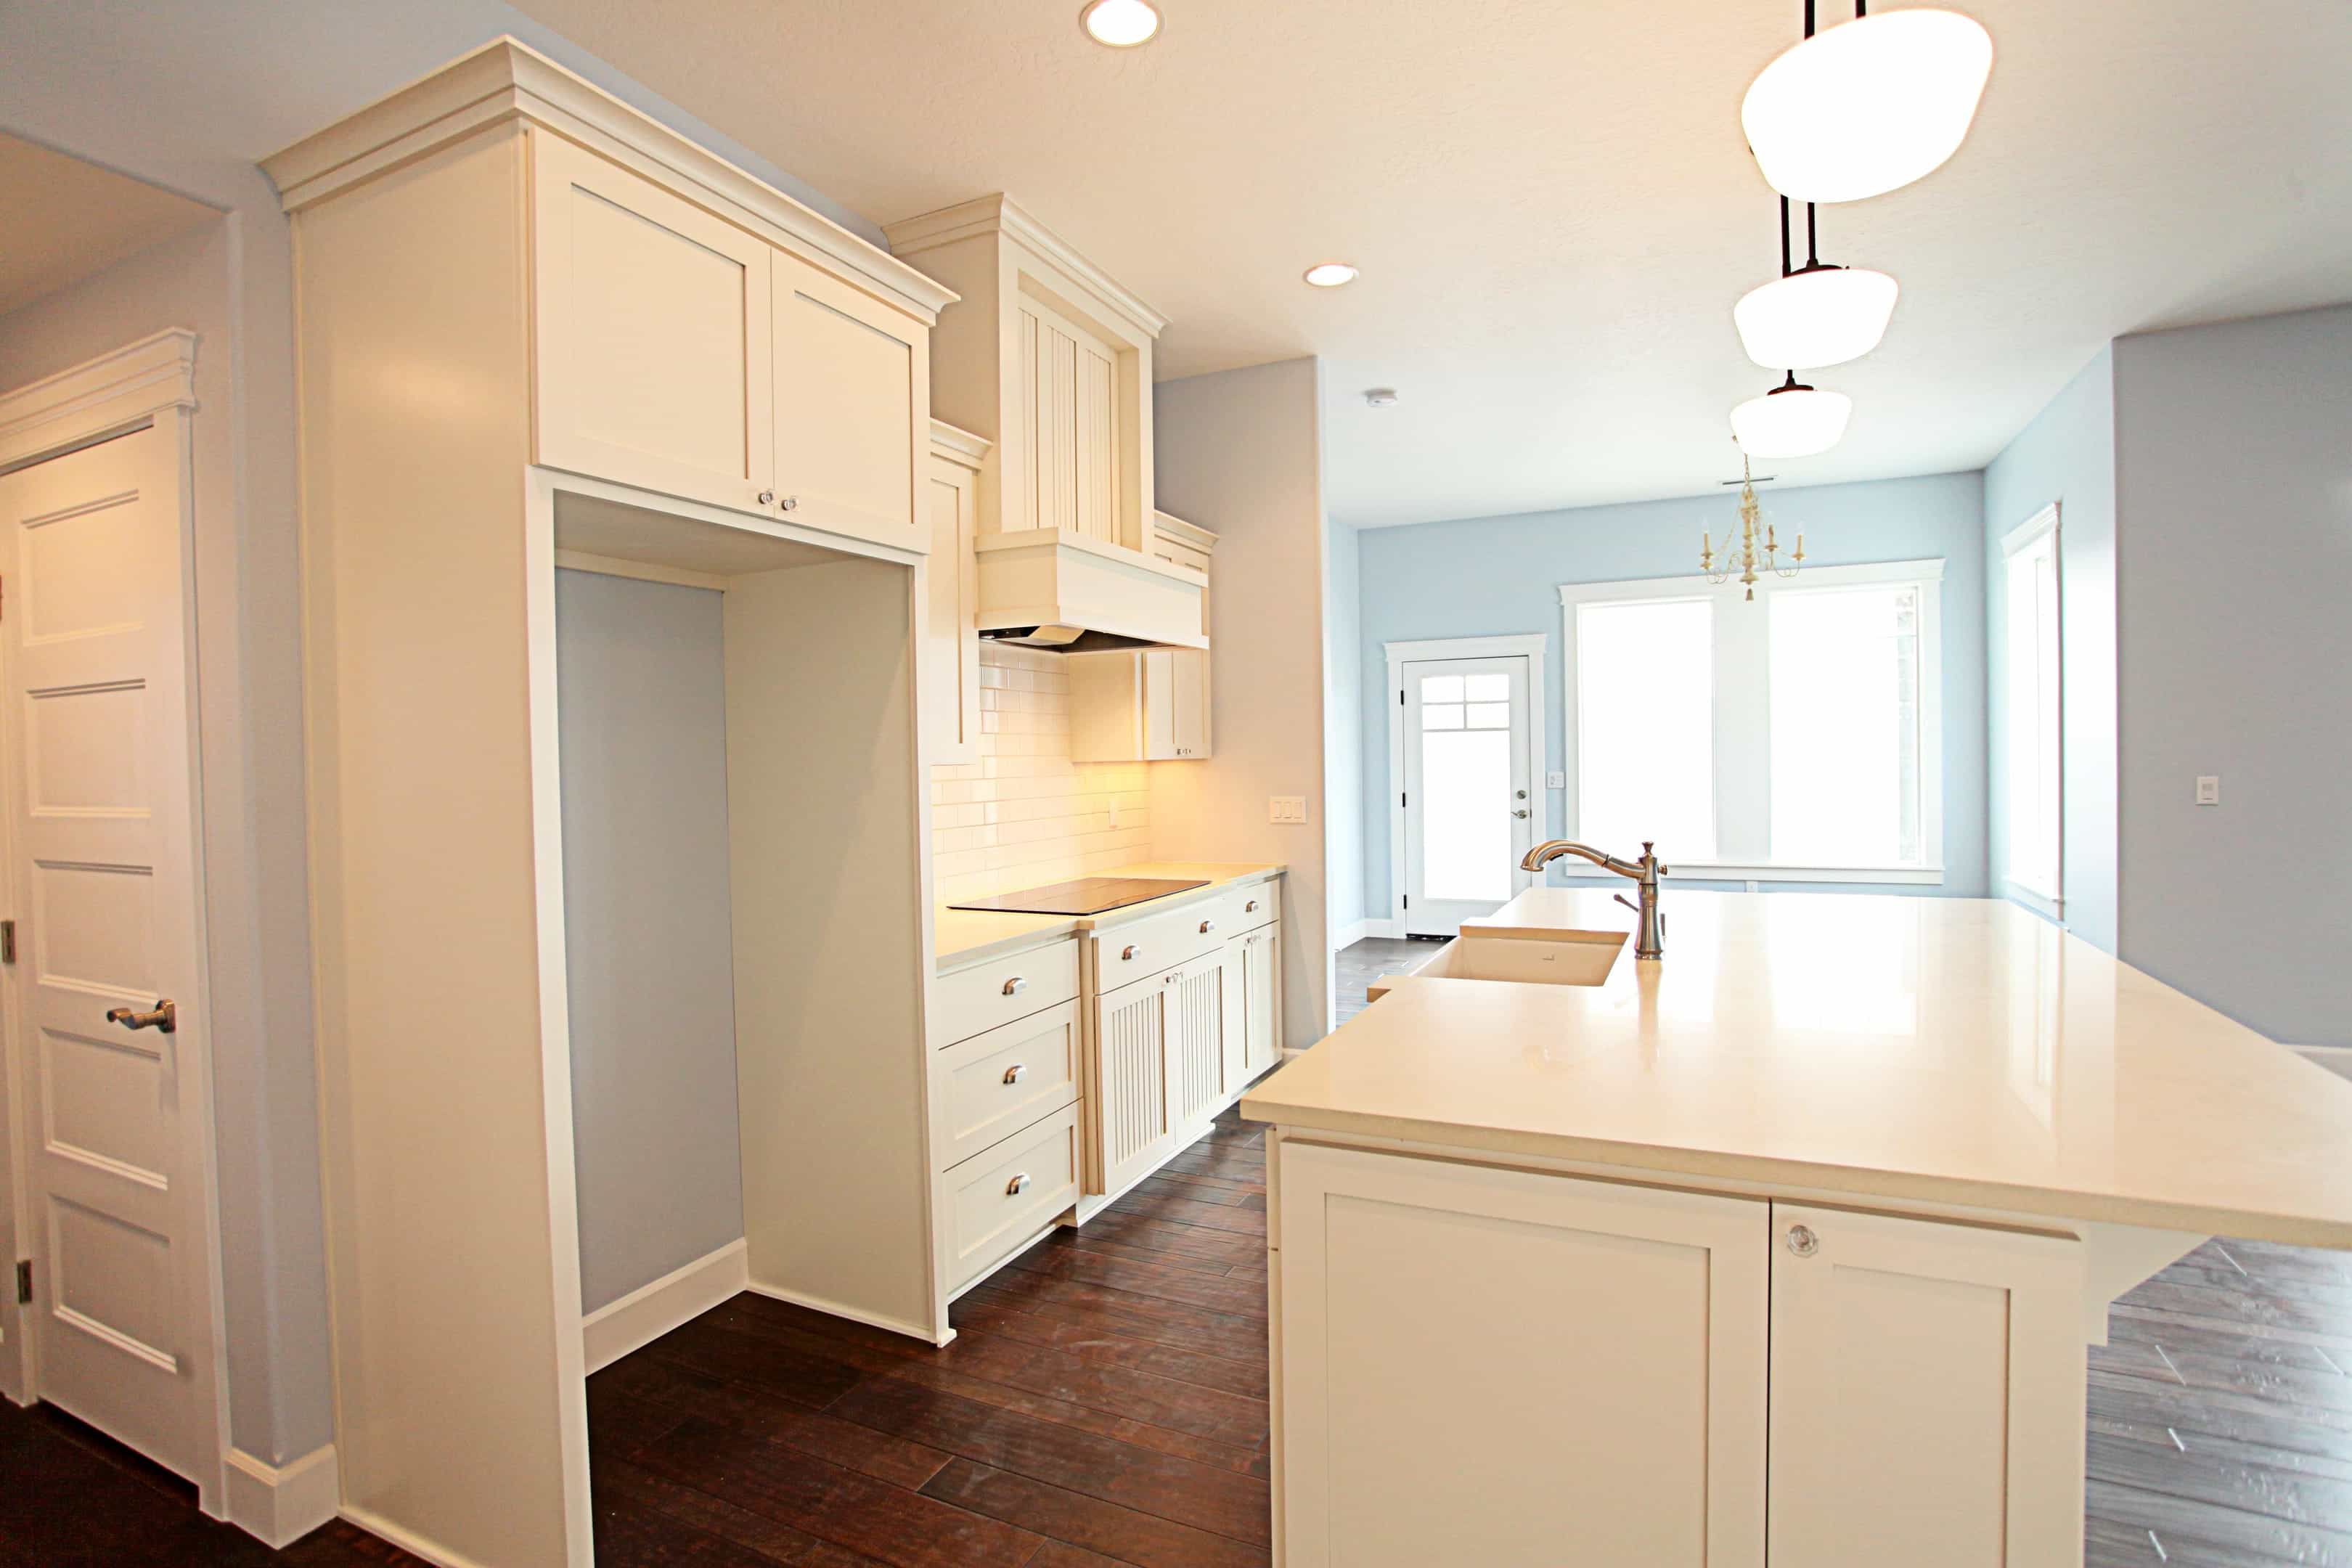 Shaker Cabinets With Crown Molding